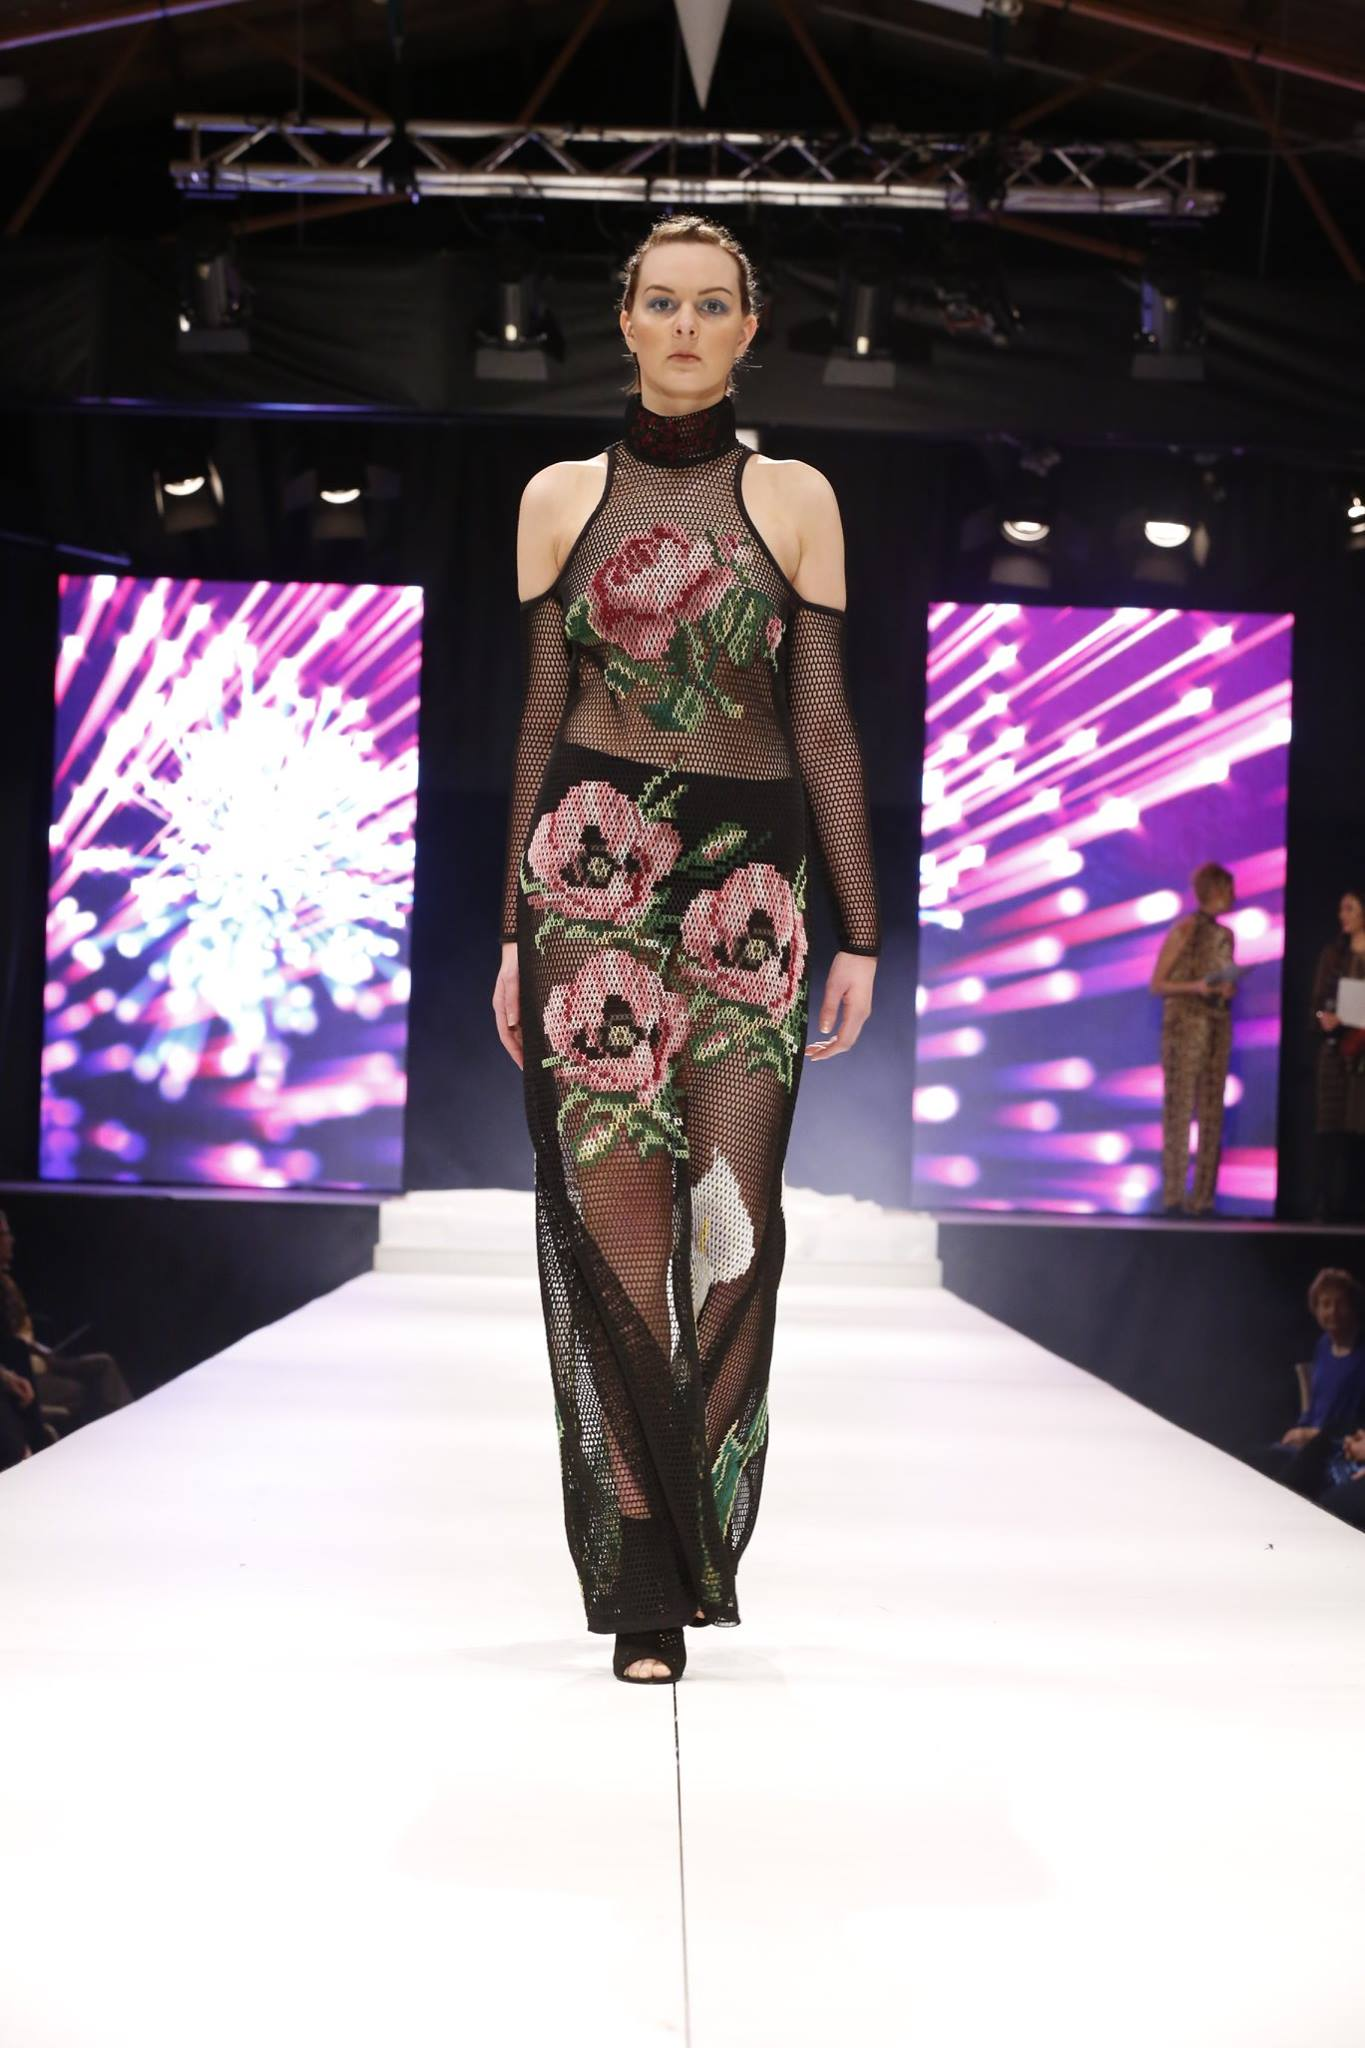 Hokonui Fashion Design Awards came to a close in the weekend with Andre Johnston presented with the Award of Excellence.